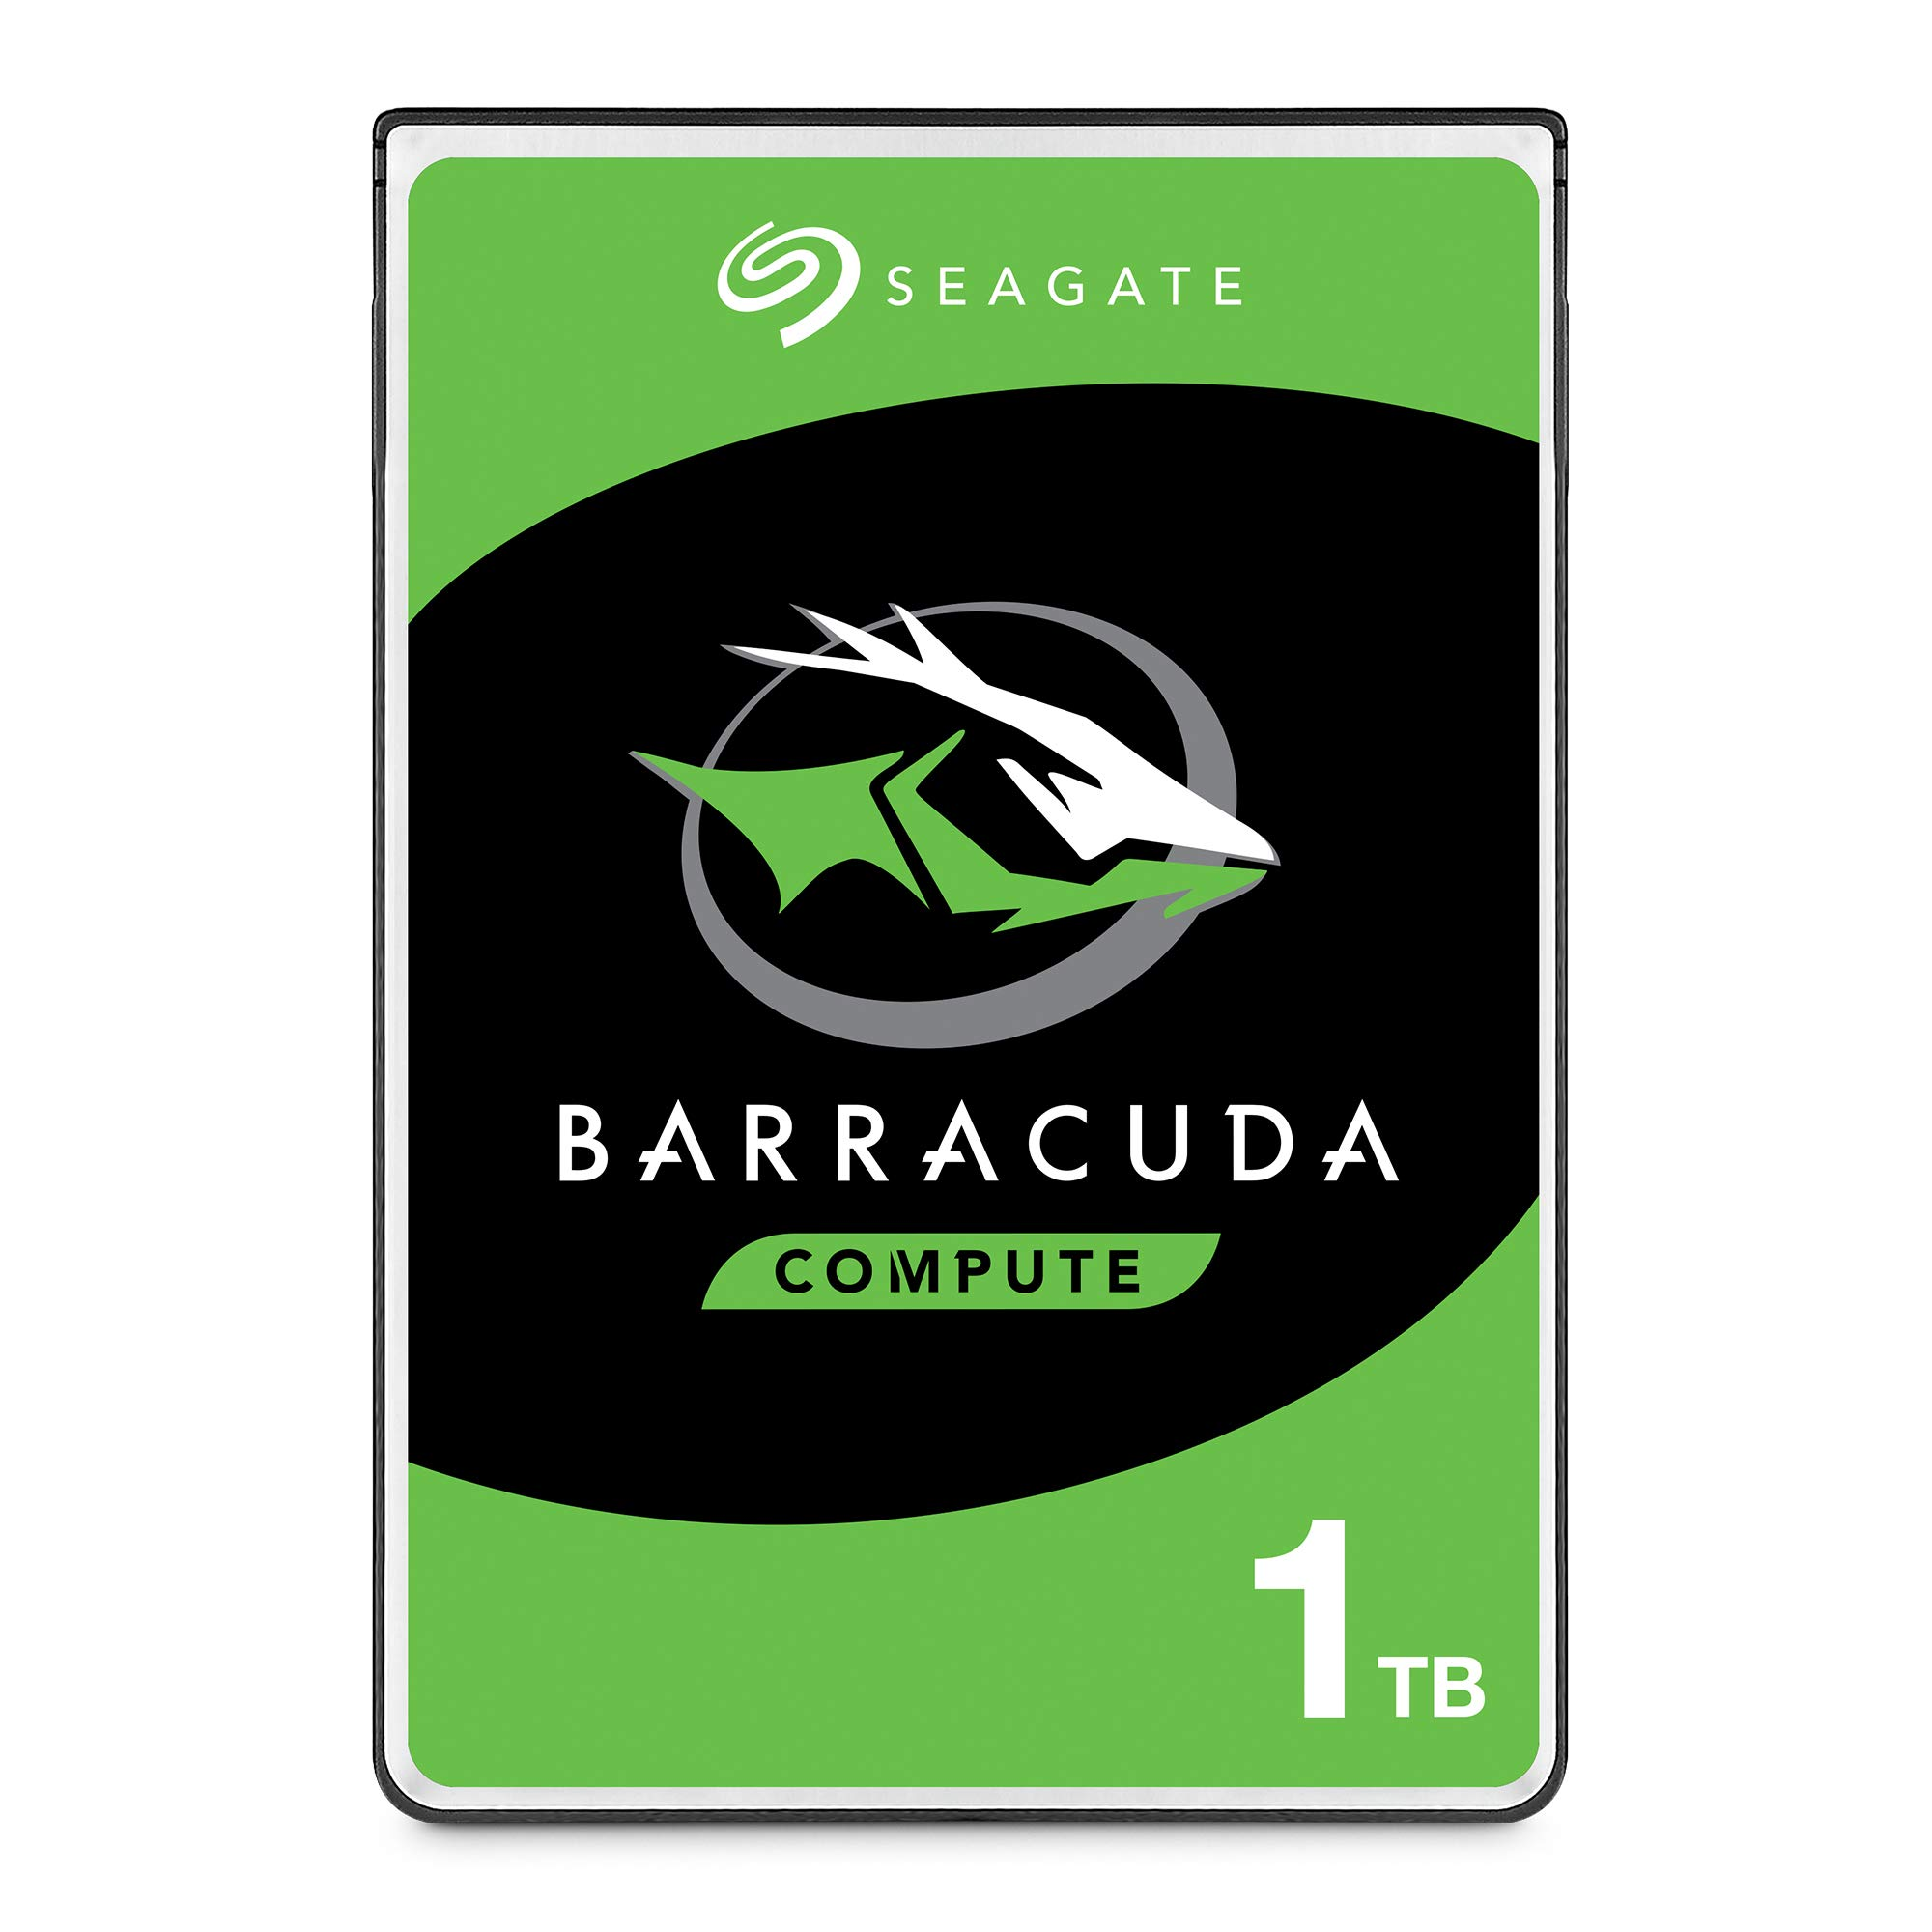 Seagate BarraCuda 1TB Internal Hard Drive HDD - 2.5 Inch SATA 6 Gb/s 5400 RPM 128MB Cache for PC Laptop - Frustration Free Packaging (ST1000LM048)